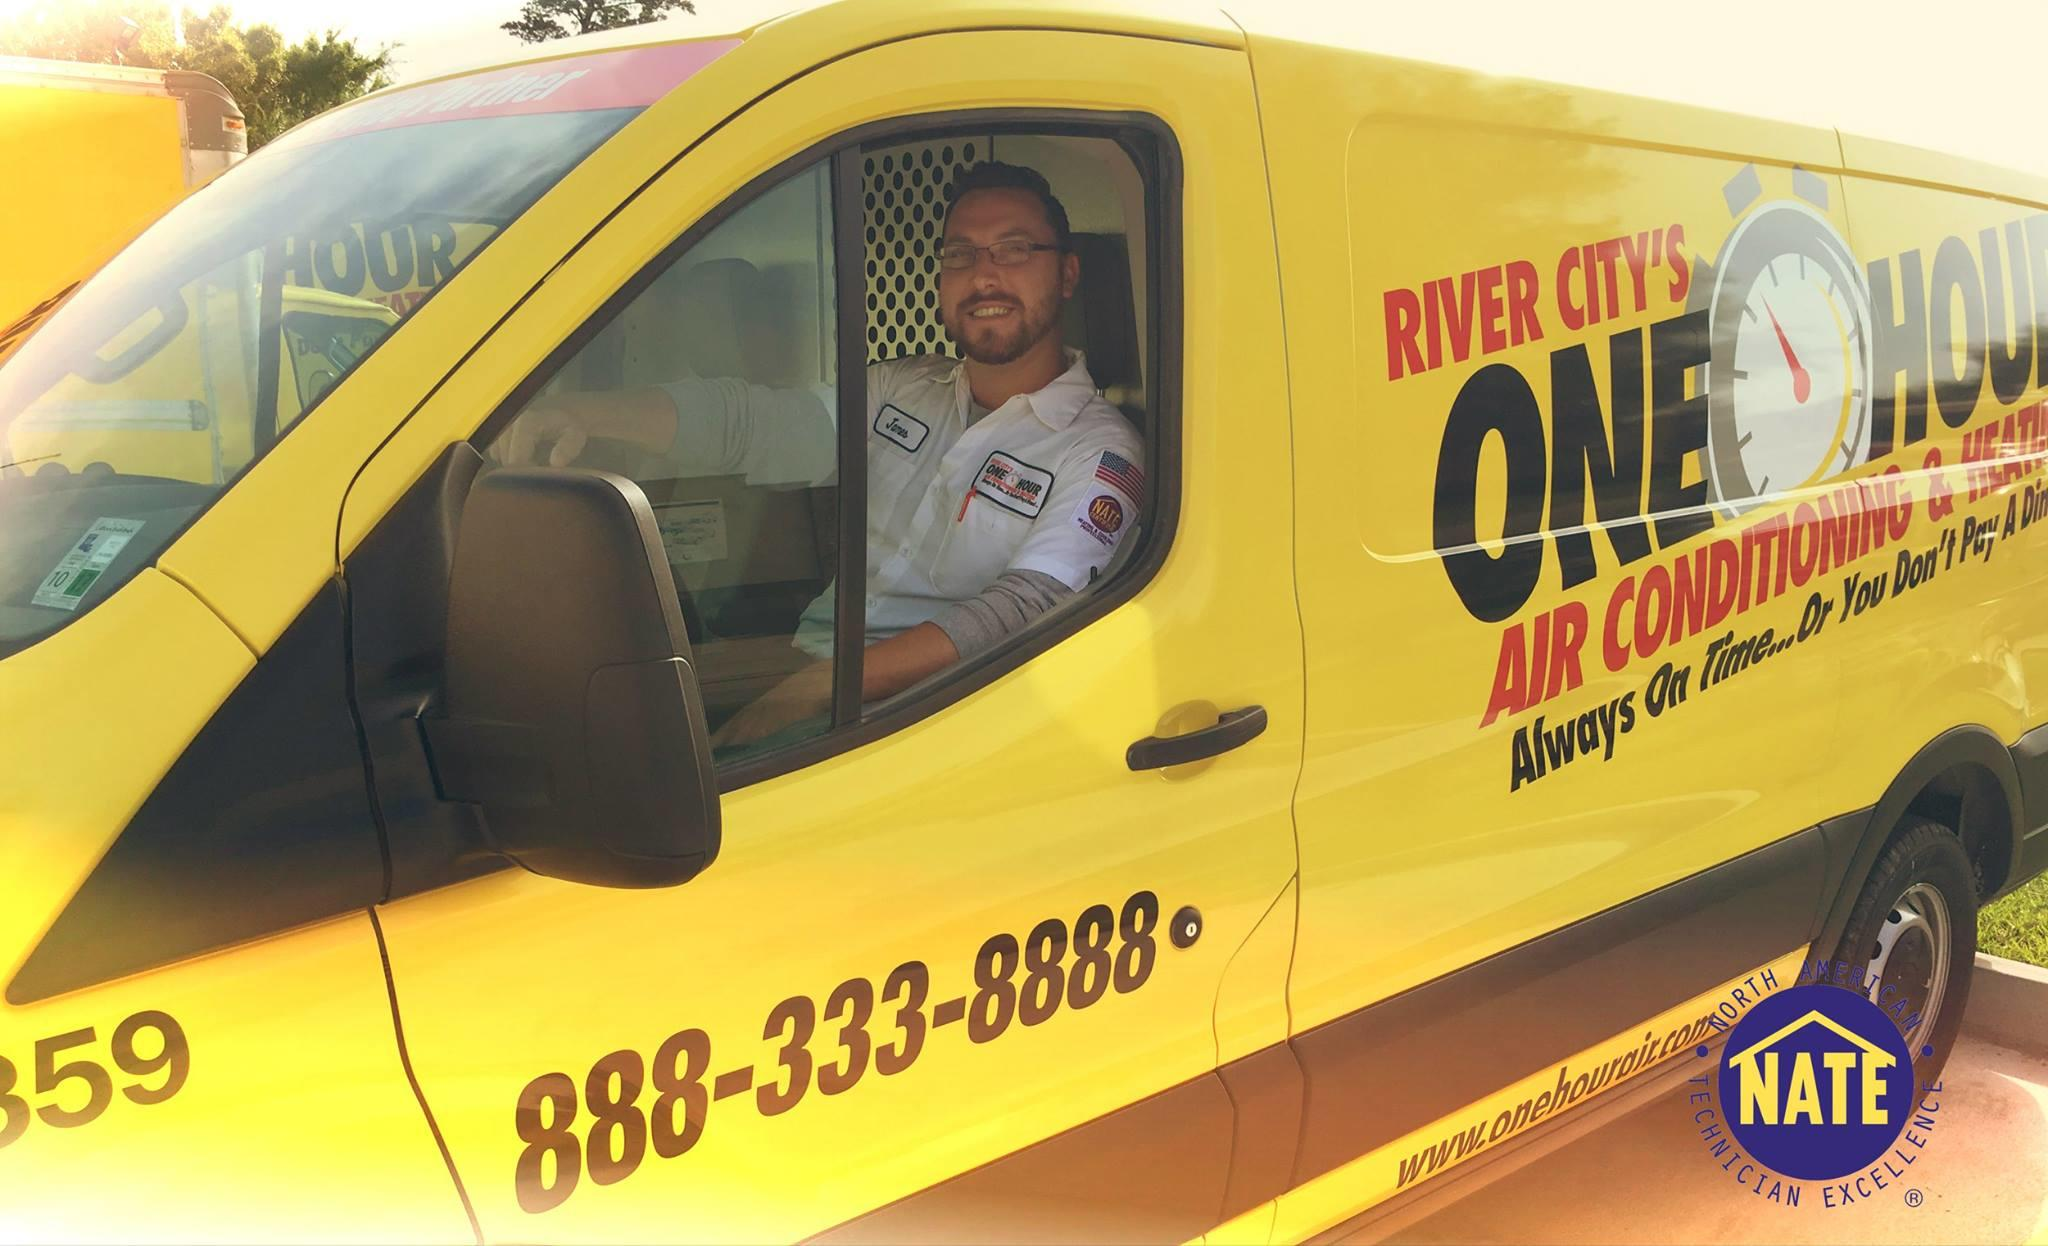 River City's One Hour Air Conditioning and Heating image 11